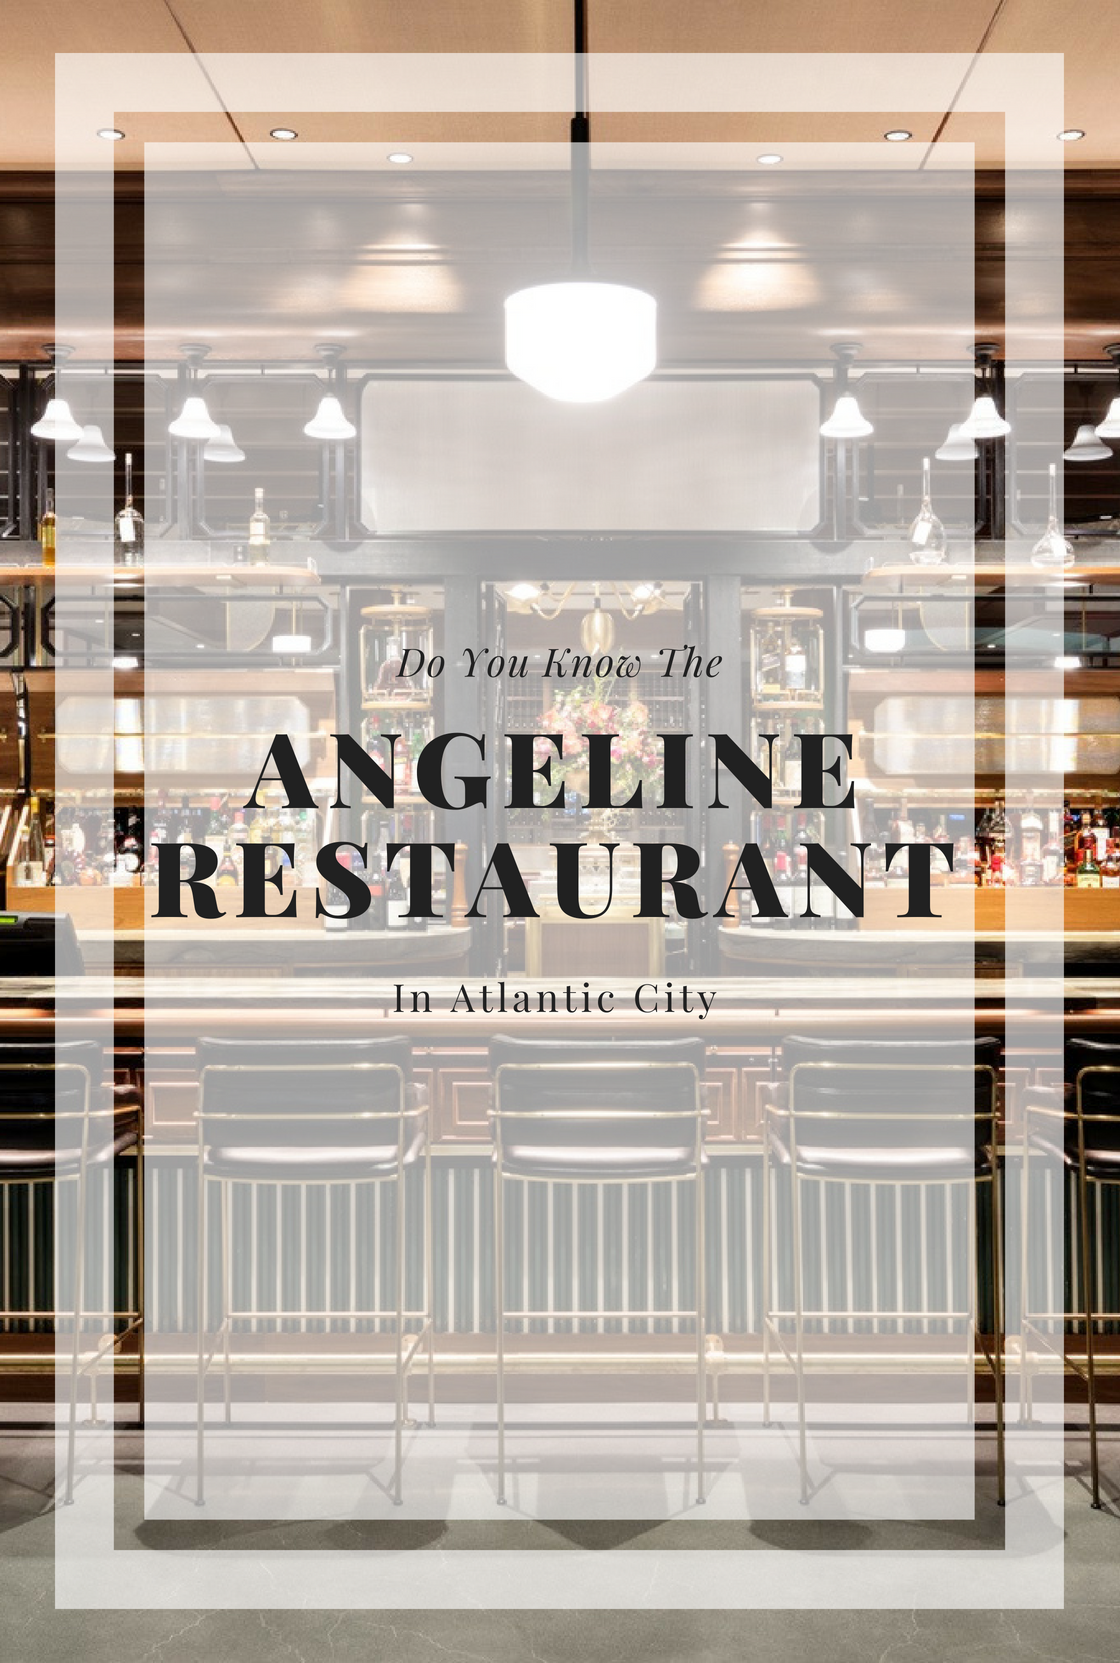 Do You Know The Angeline Restaurant In Atlantic City?